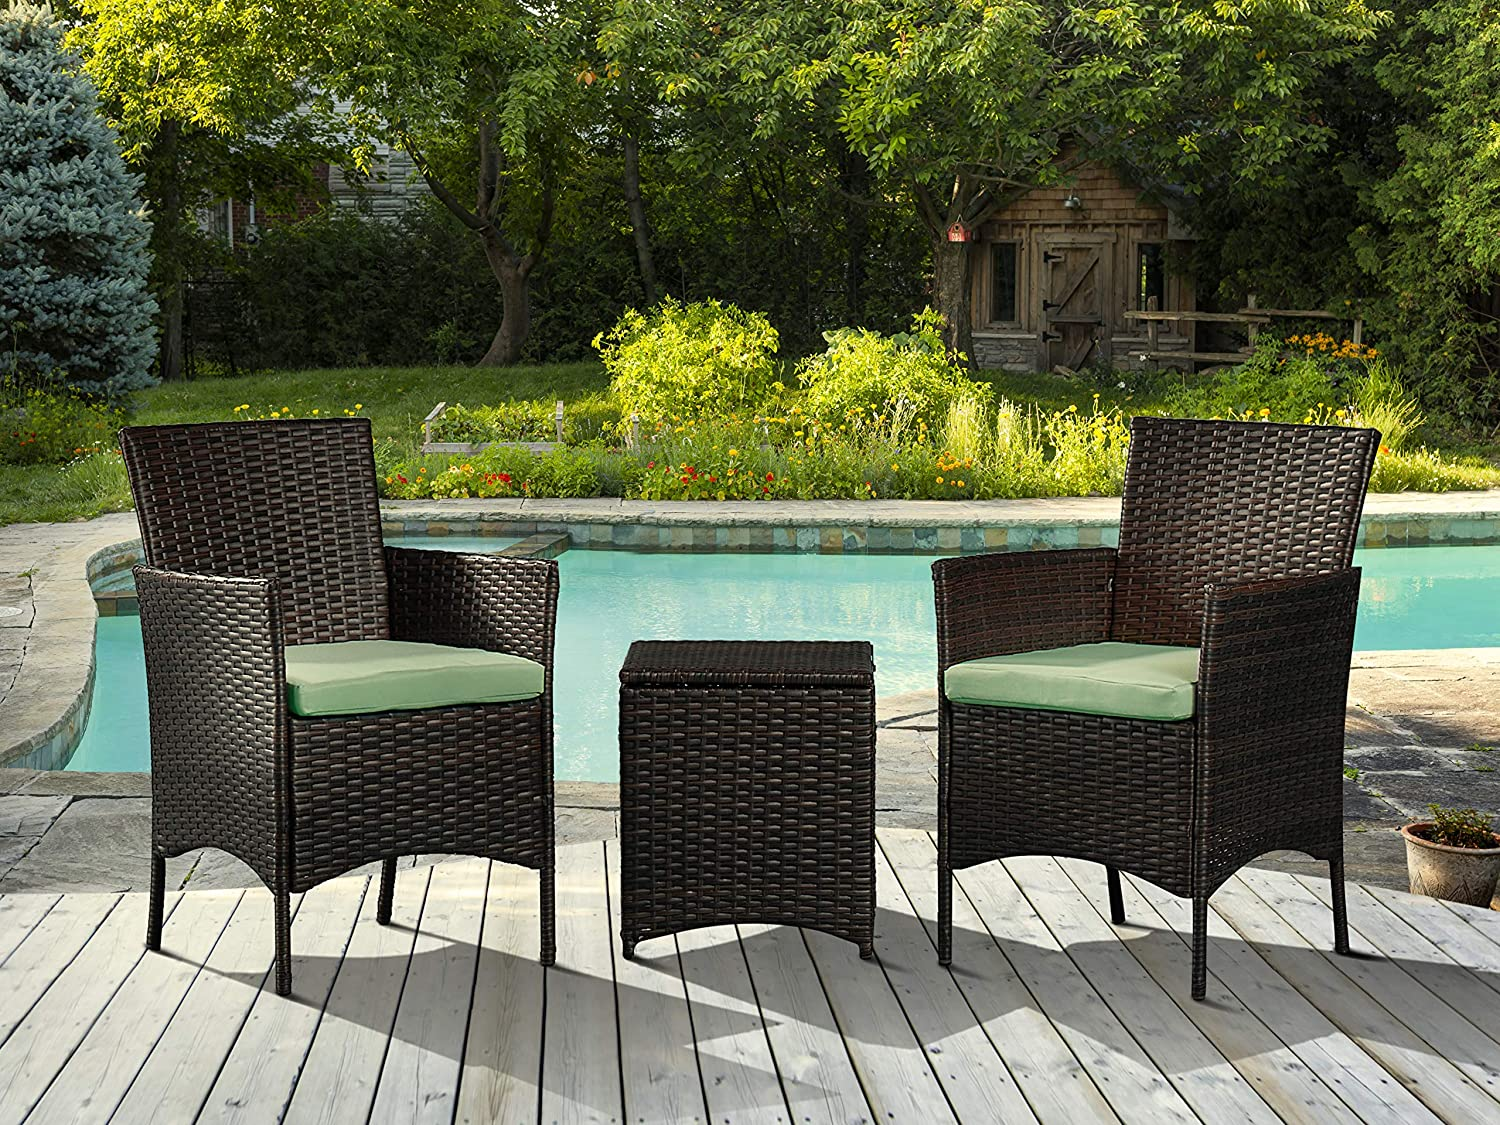 Charmant PONLCY HOME Patio Furniture Sets 3 Pieces Outdoor Bistro Set Rattan Chairs  Wicker Conversation Sets With Table Cushion Outdoor Garden Furniture  Sets,Brown